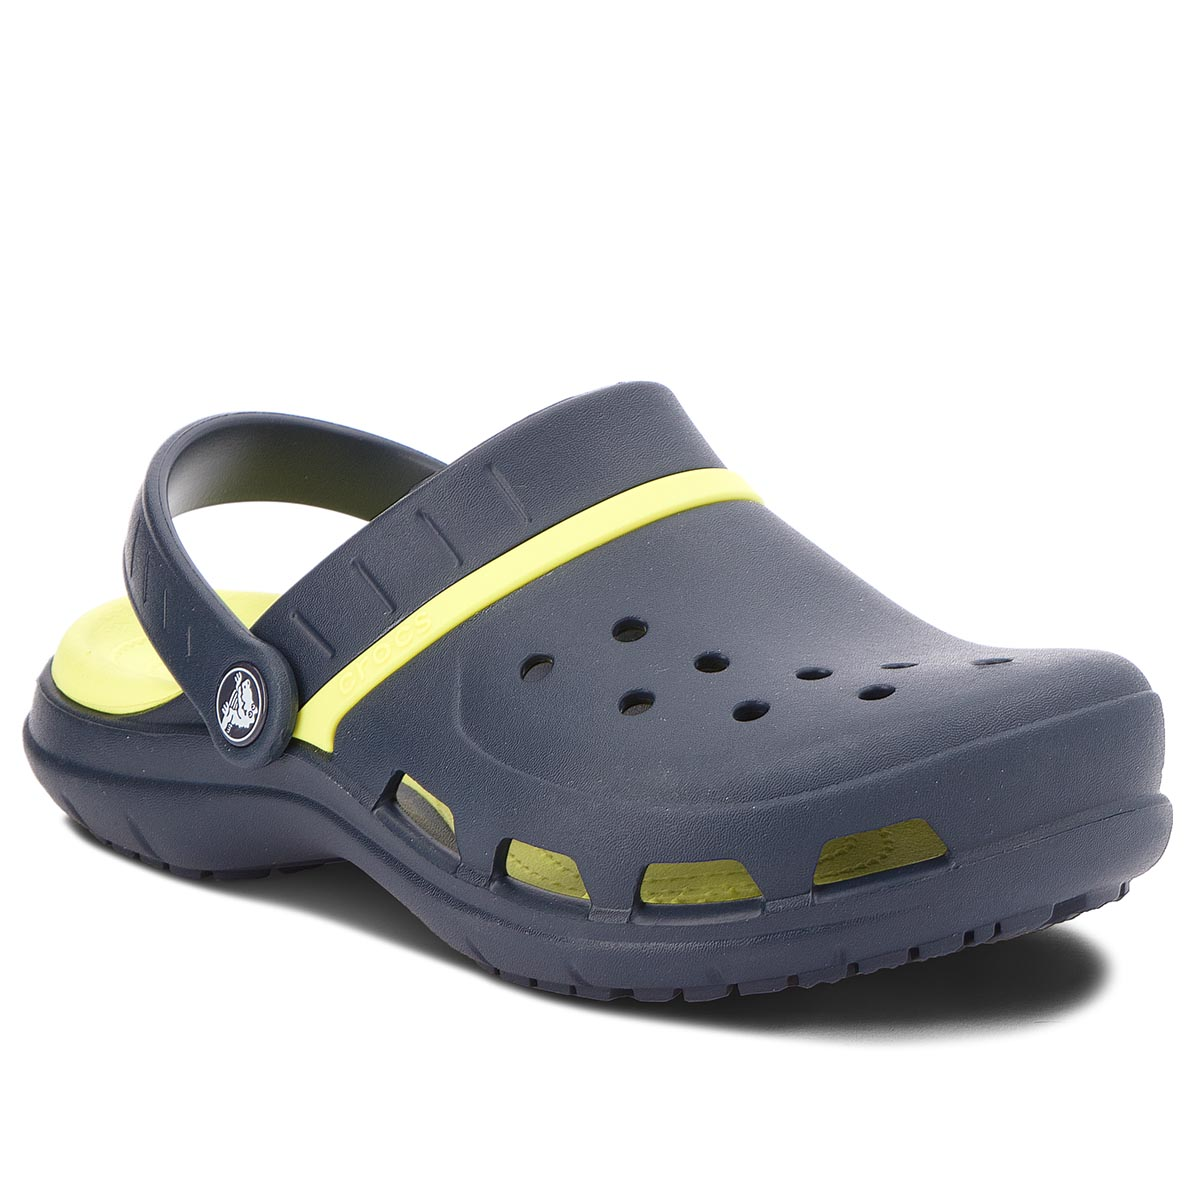 Klapki CROCS - Modi Sport Clog 204143 Navy/Tennis Ball Green